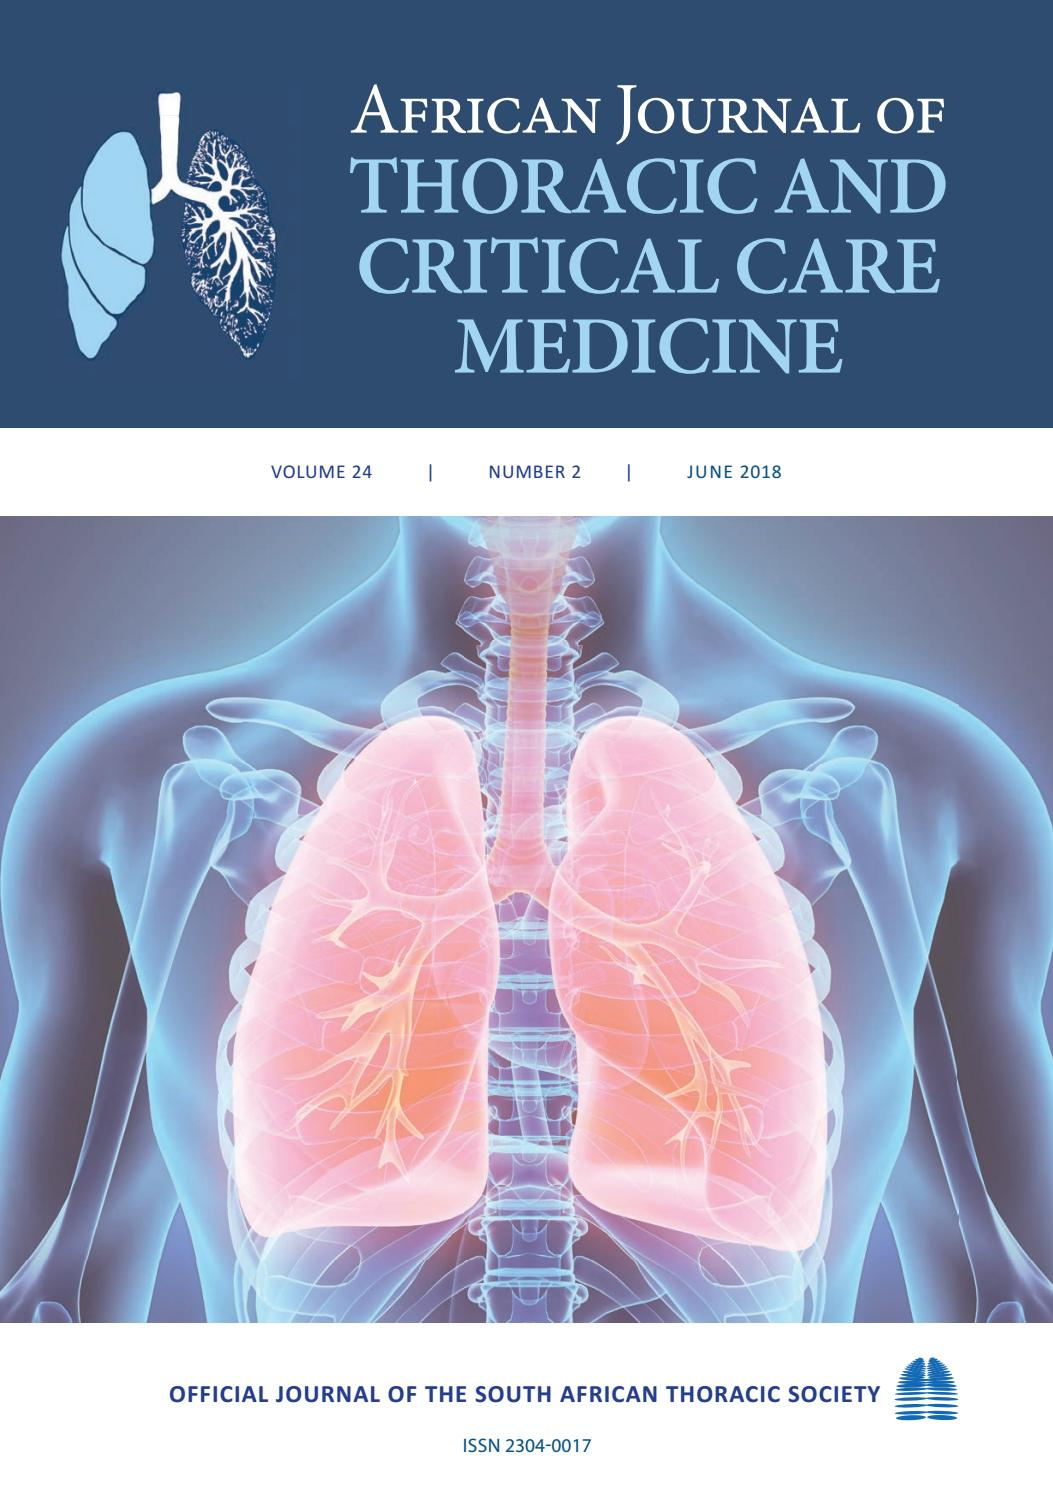 African Journal of Thoracic and Critical Care Medicine - Vol